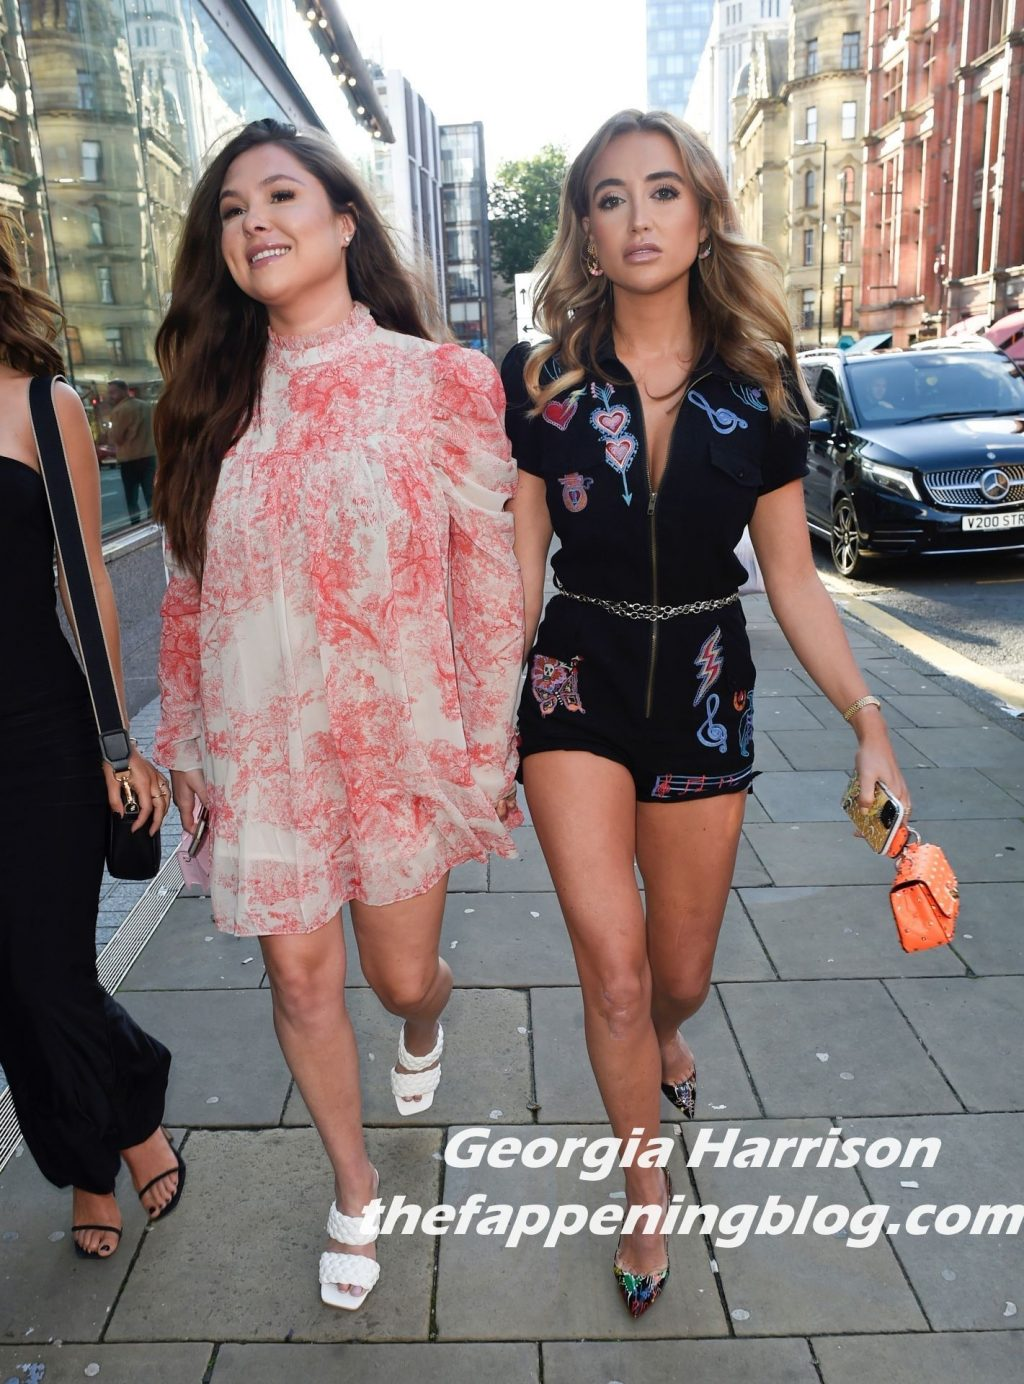 Georgia Harrison Flashes New Boobs in Manchester (79 Photos)